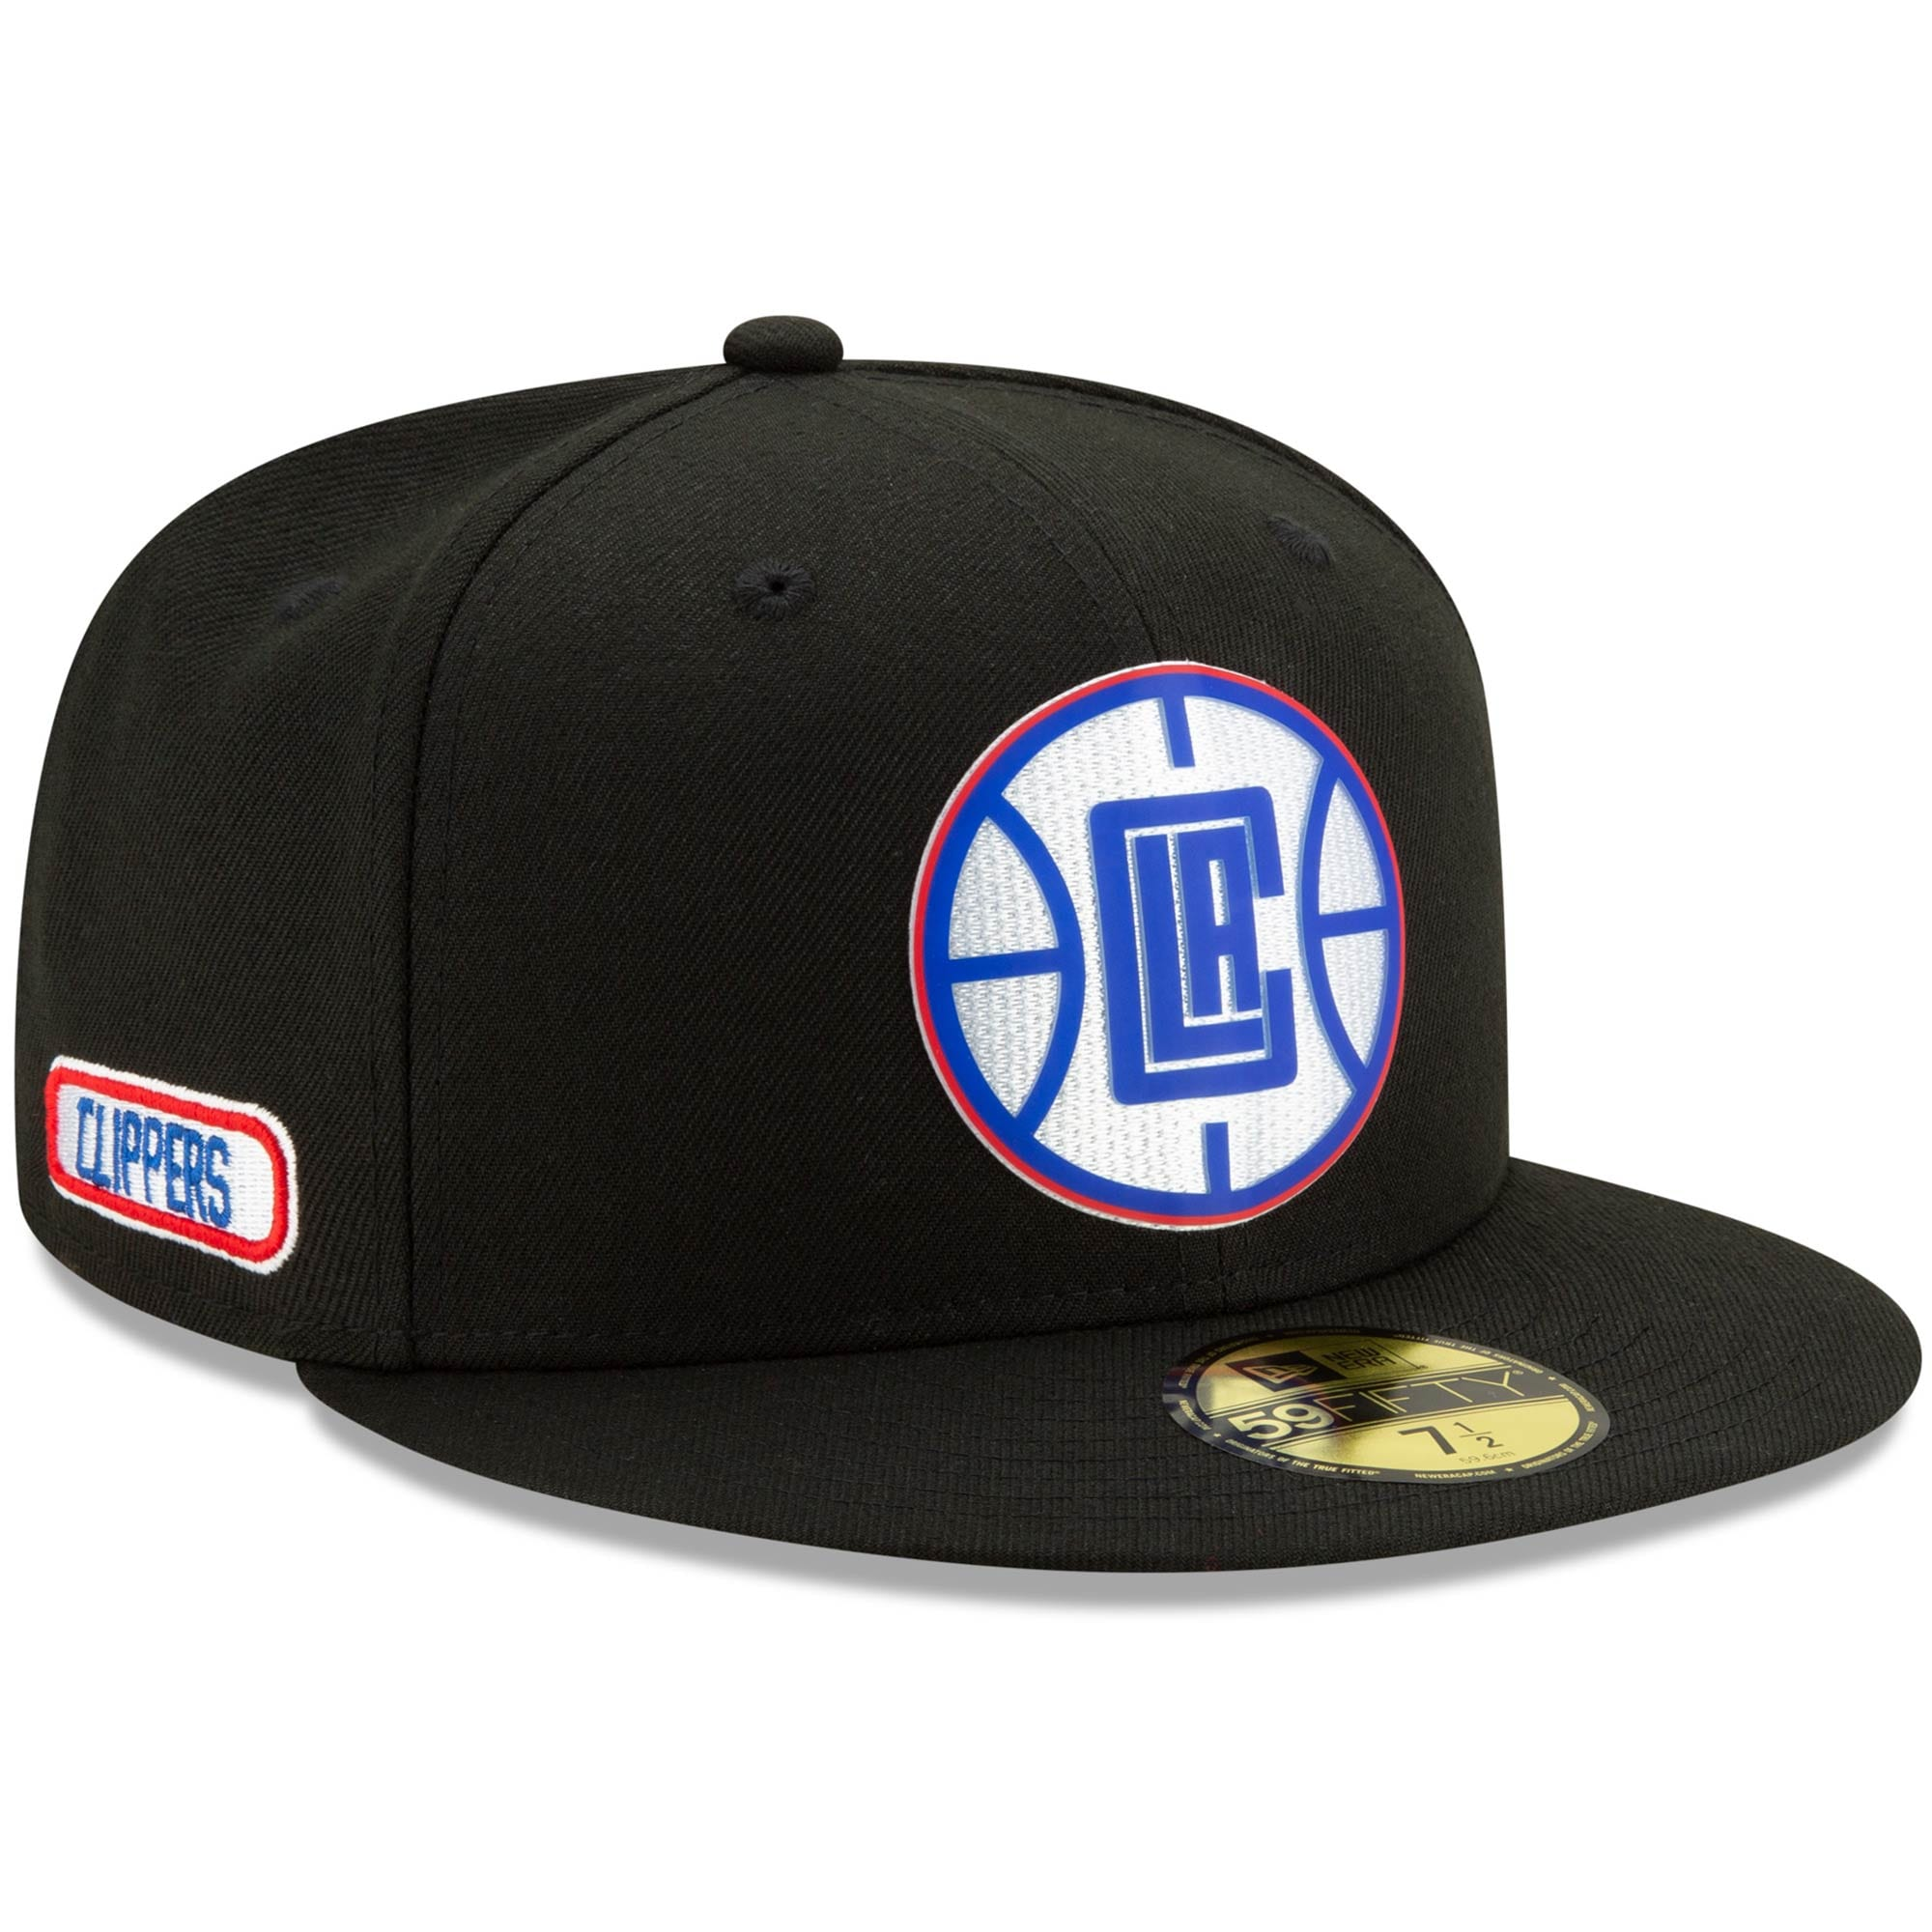 LA Clippers New Era Official Back Half 59FIFTY Fitted Hat - Black